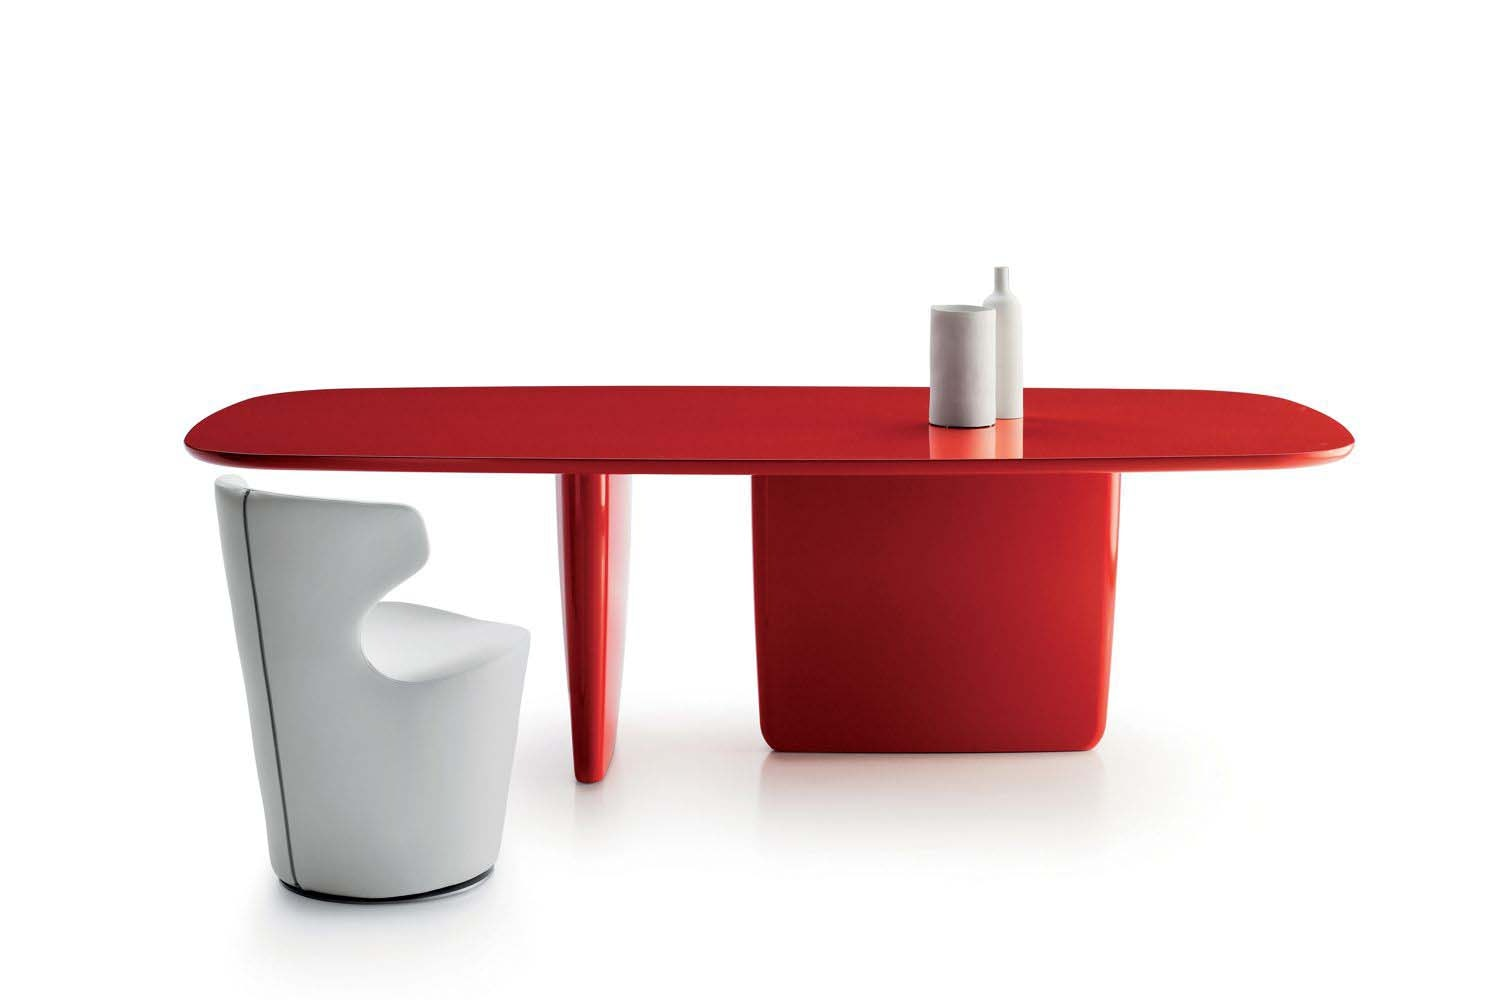 Tobi-Ishi Rectangular Table by Edward Barber & Jay Osgerby